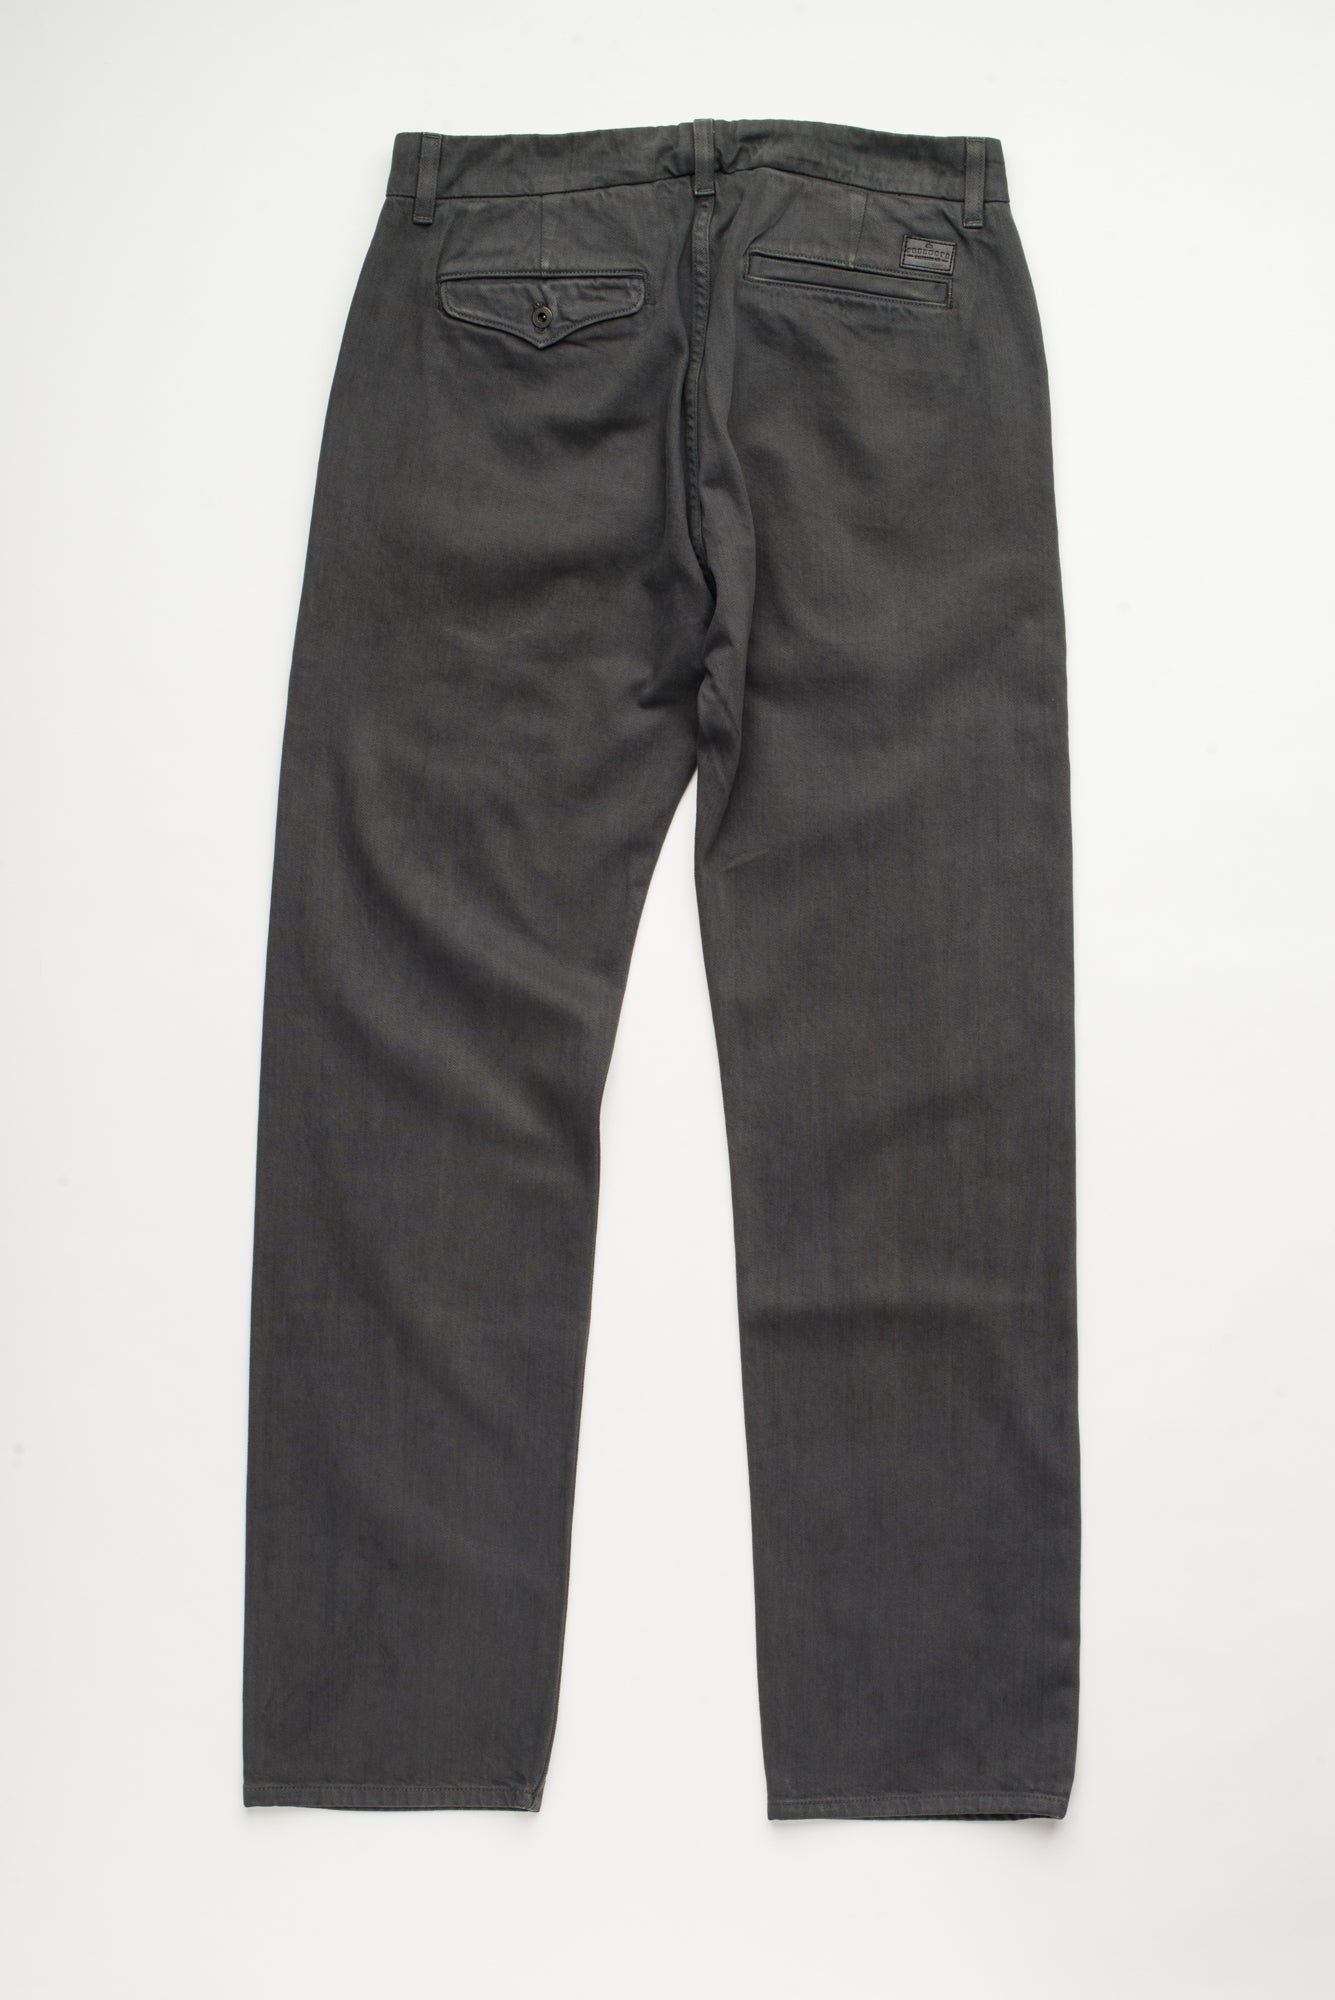 Workers Chino Classic Fit <span> Charcoal </span>